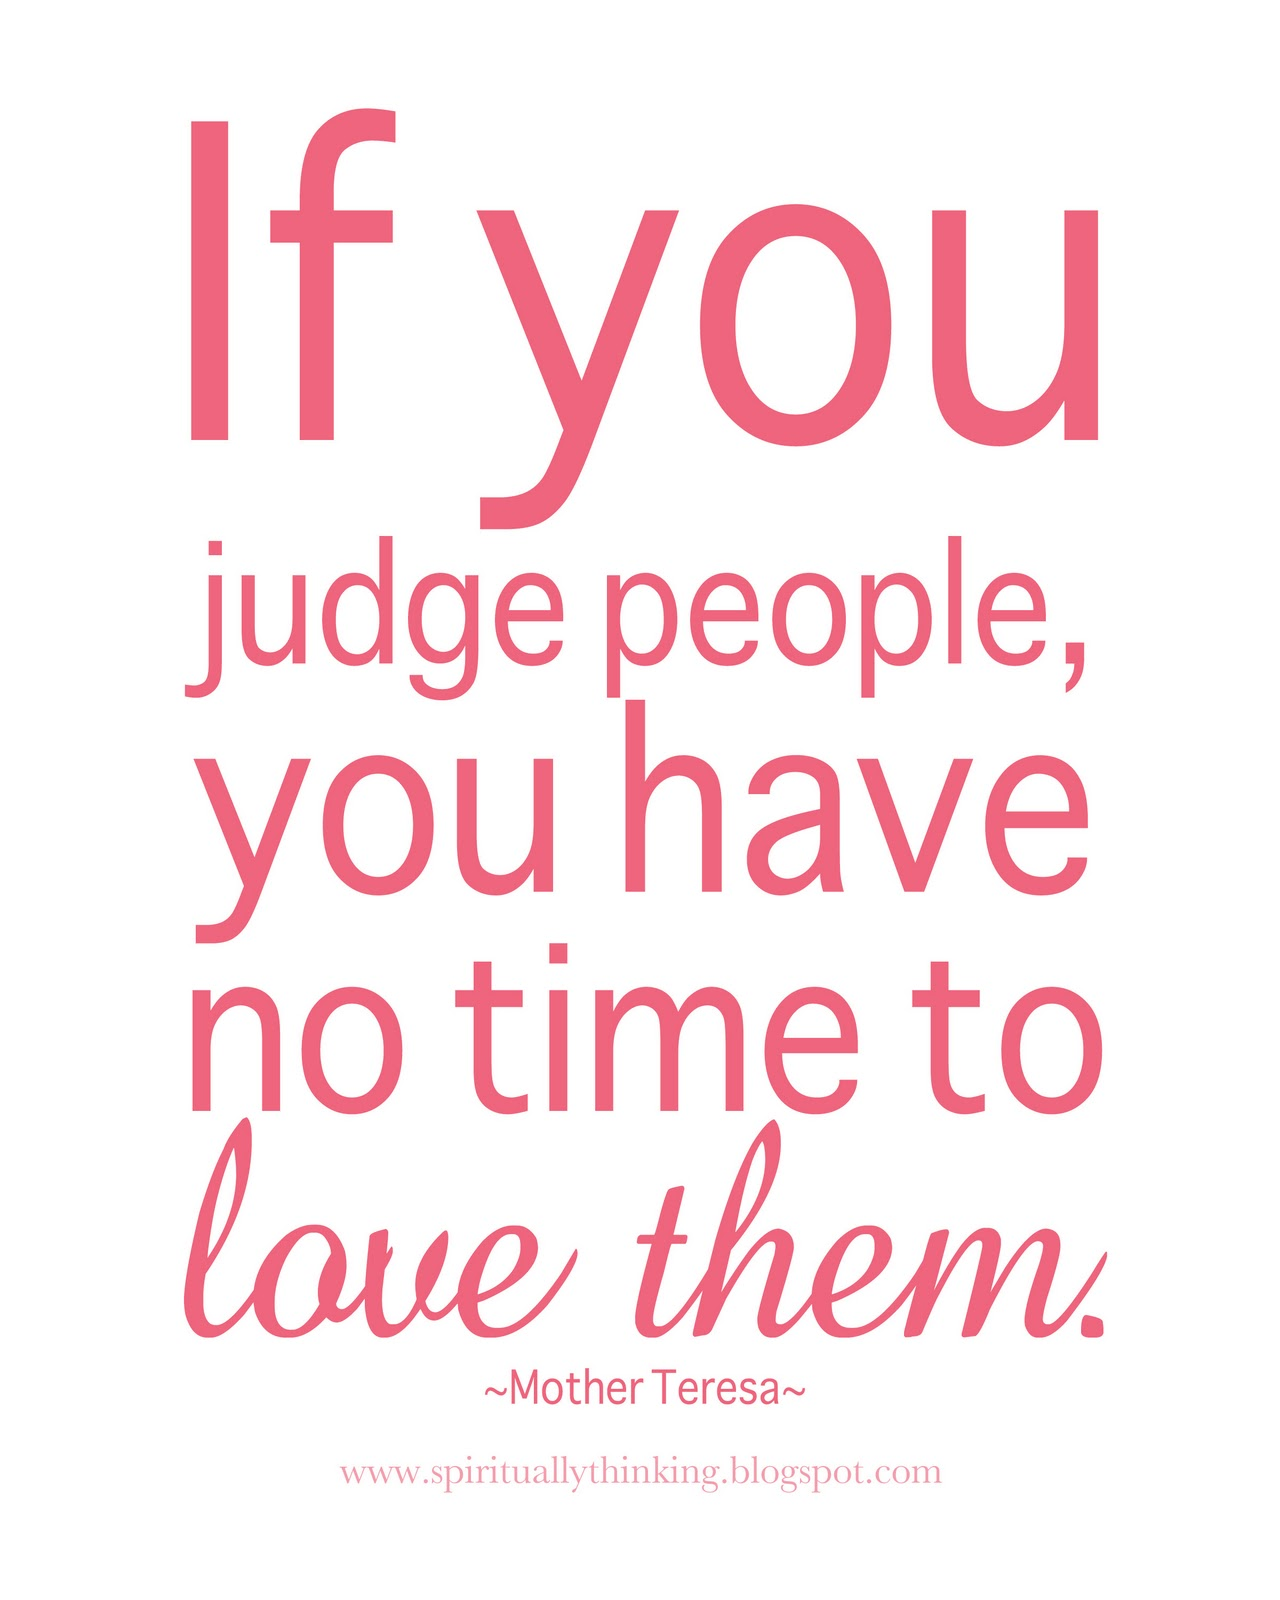 Mother Teresa Quotes Love Them Anyway And Spiritually Speaking Love Don't Judge